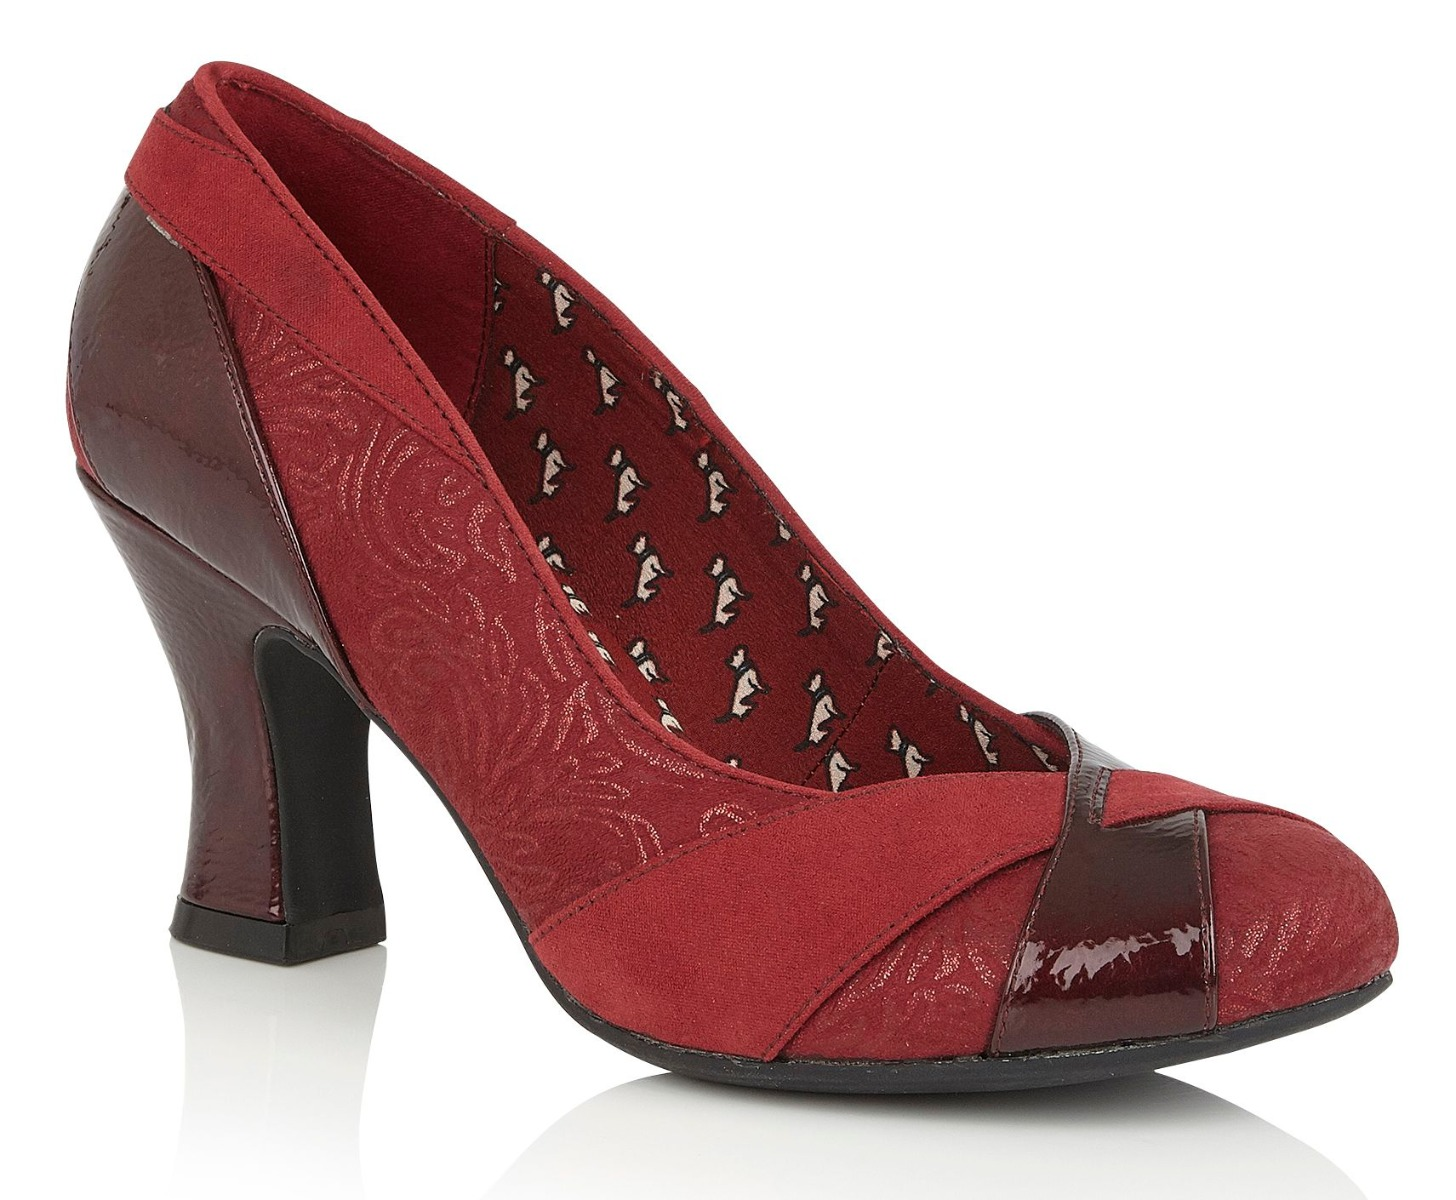 rs09306_chaussures-escarpins-pin-up-retro-50-s-glam-chic-lulu-bordeaux